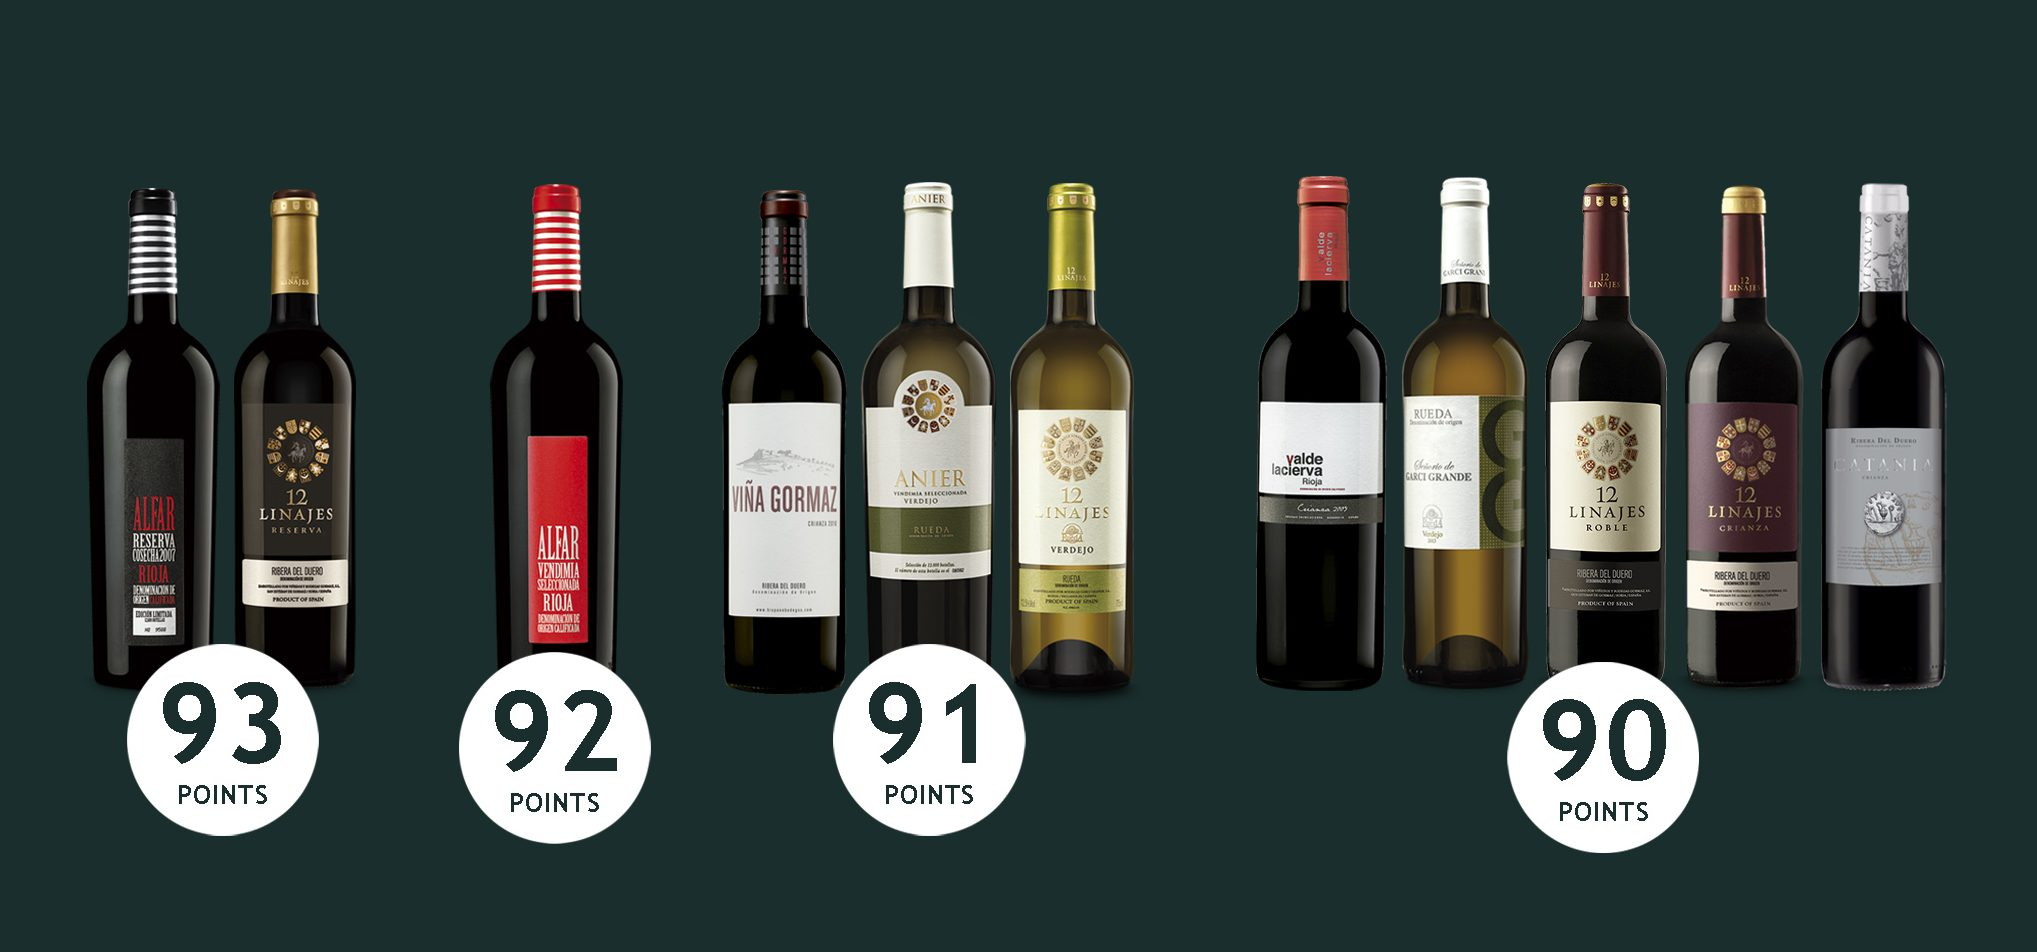 11 wines scored with 90 or more points in Peñin Guide 2017